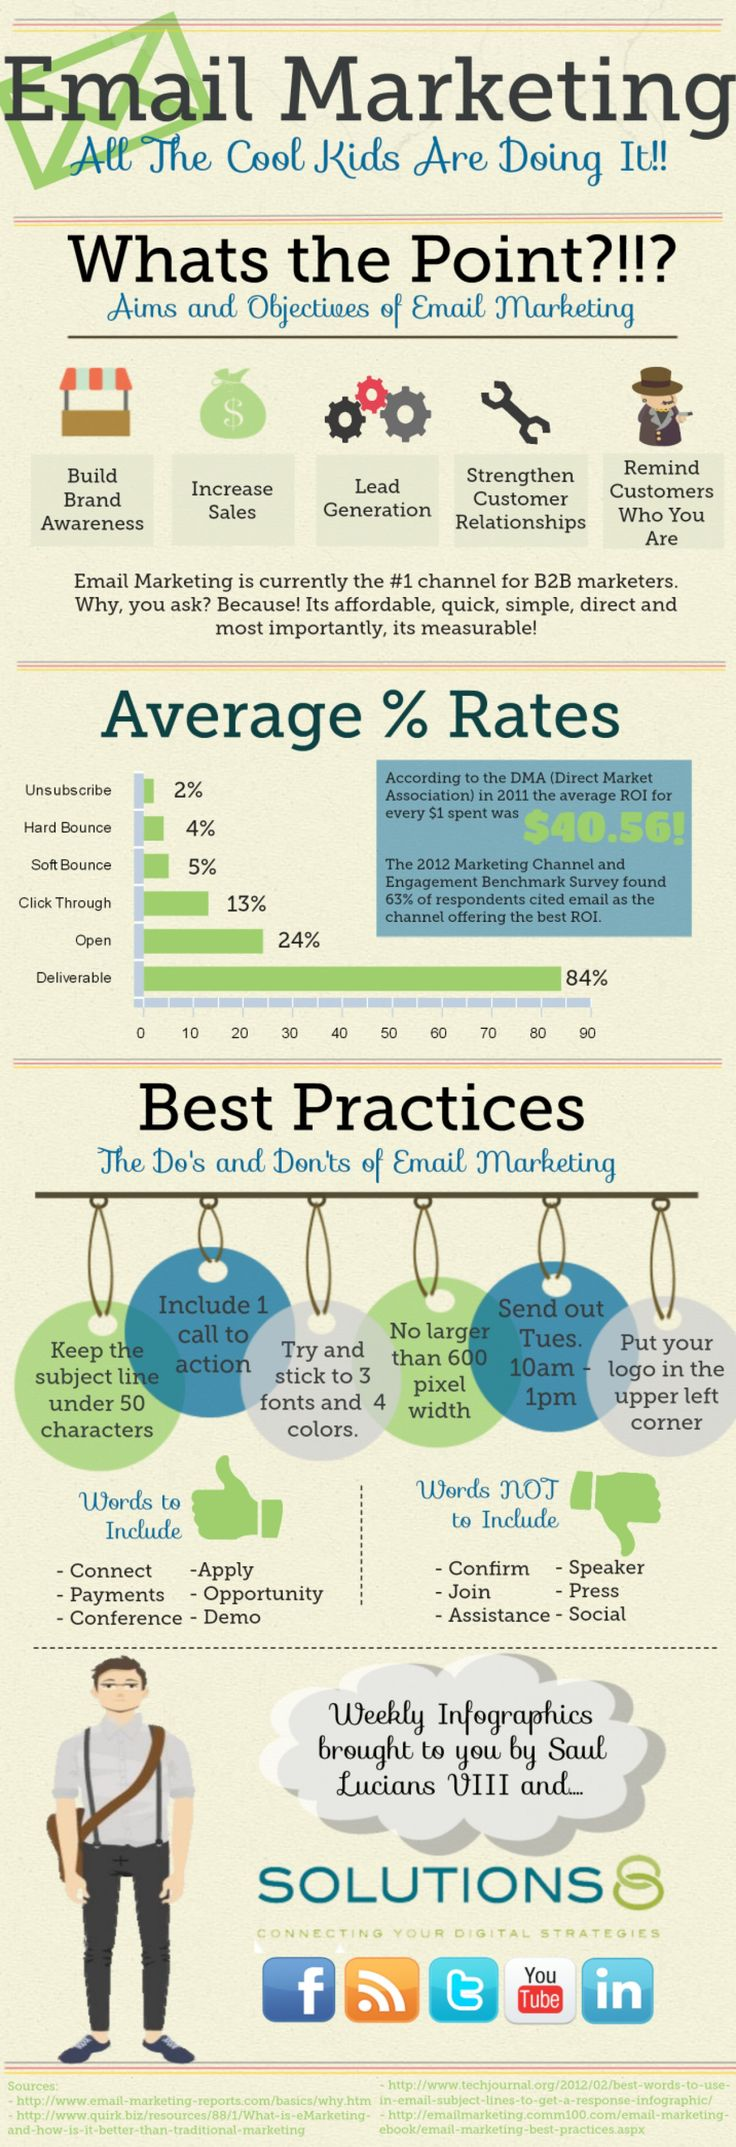 Why is Email Marketing so Important? Infographic www.b2bleadsgeneration.net